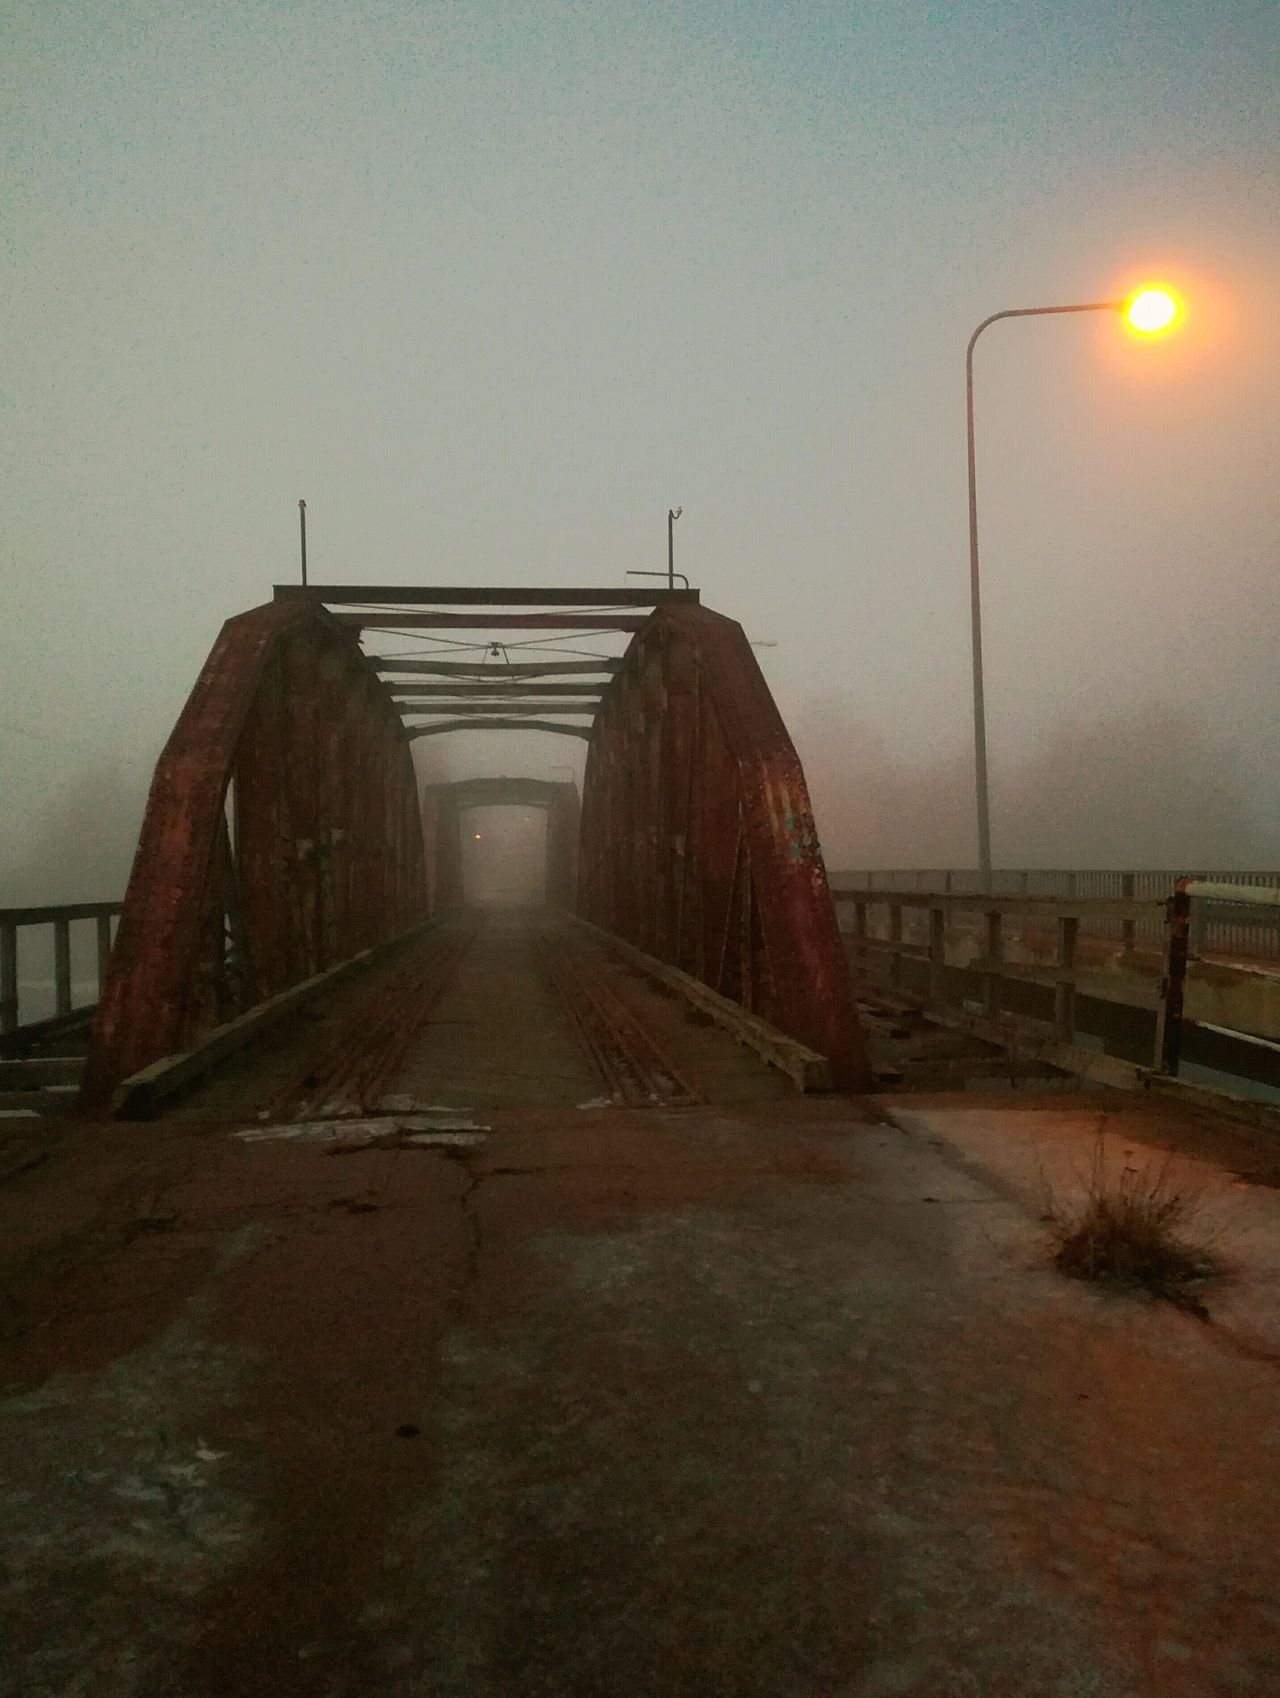 Bridge - Man Made Structure No People Outdoors Iron Bridge Railway Bridge Old Bridge Foggy Weather Architecture Abandonedplaces Halla Finland Industrial Abandoned_junkies Past Local History Ruins By The Sea Fog Built Structure Rust See Through Exploring Light And Shadow Streetlamp Railway Track